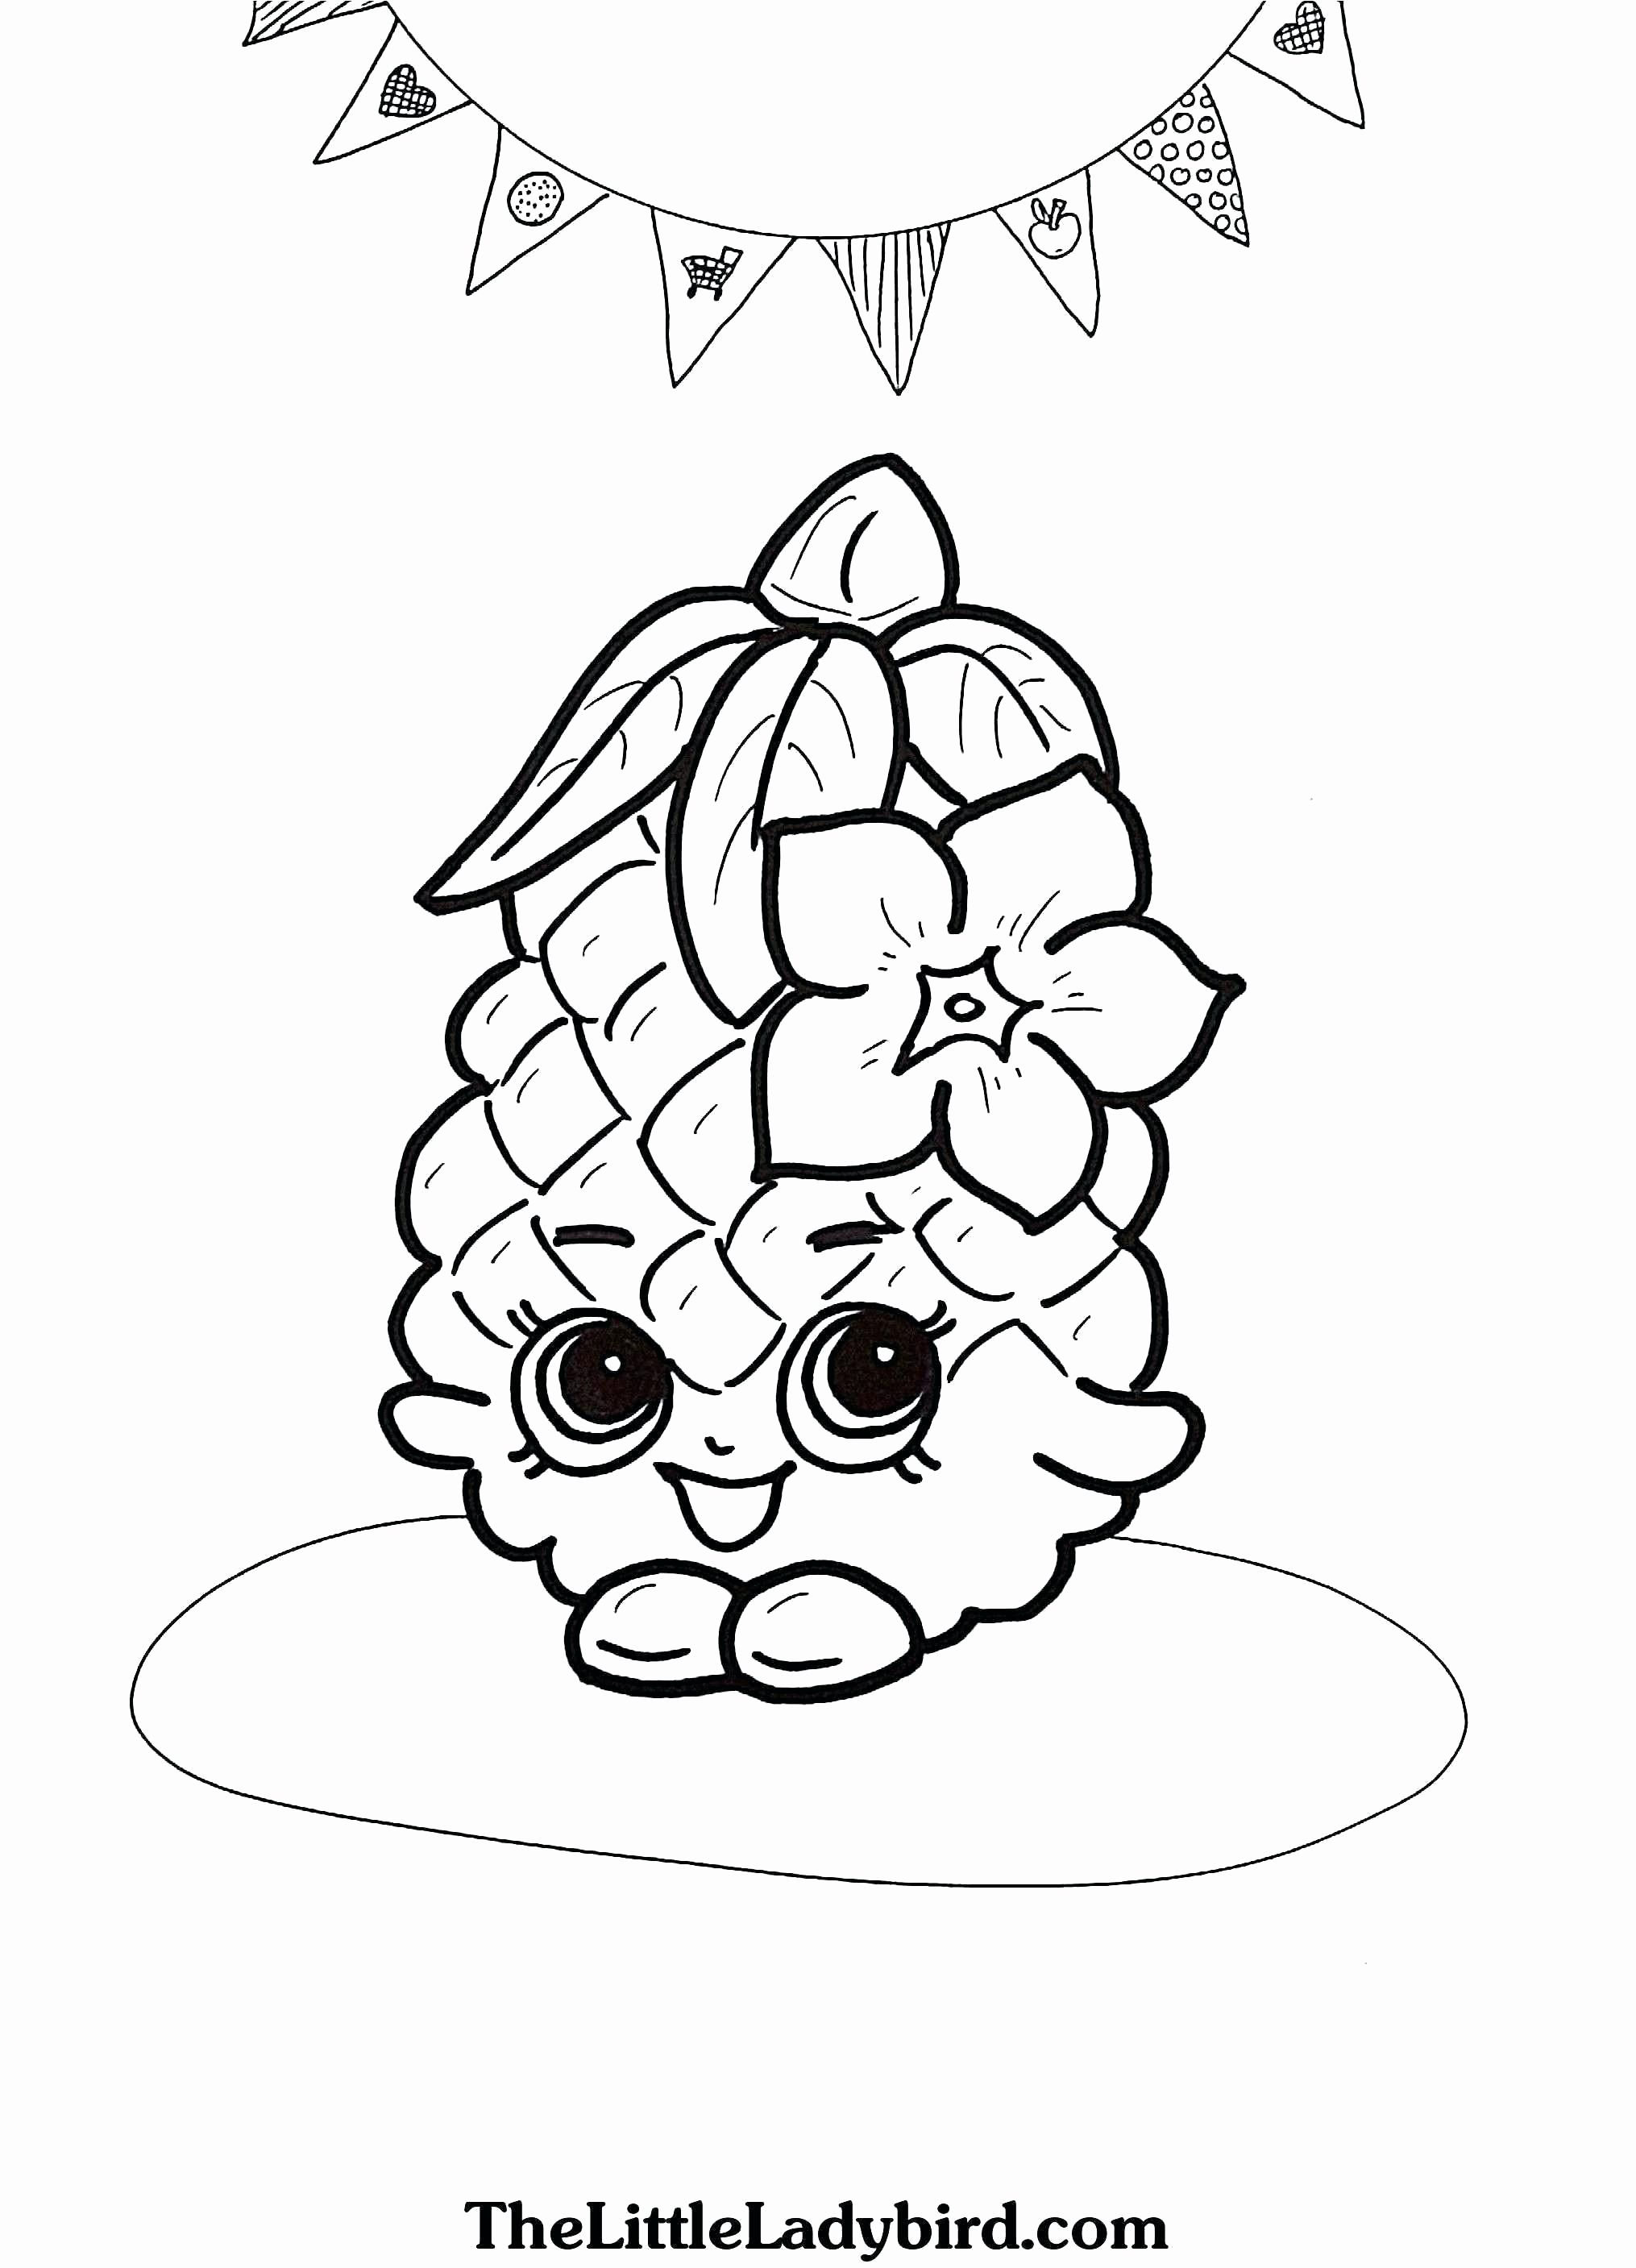 Angels Shepherds Gloria Coloring Page - TheCahtolicKid | 2814x2030